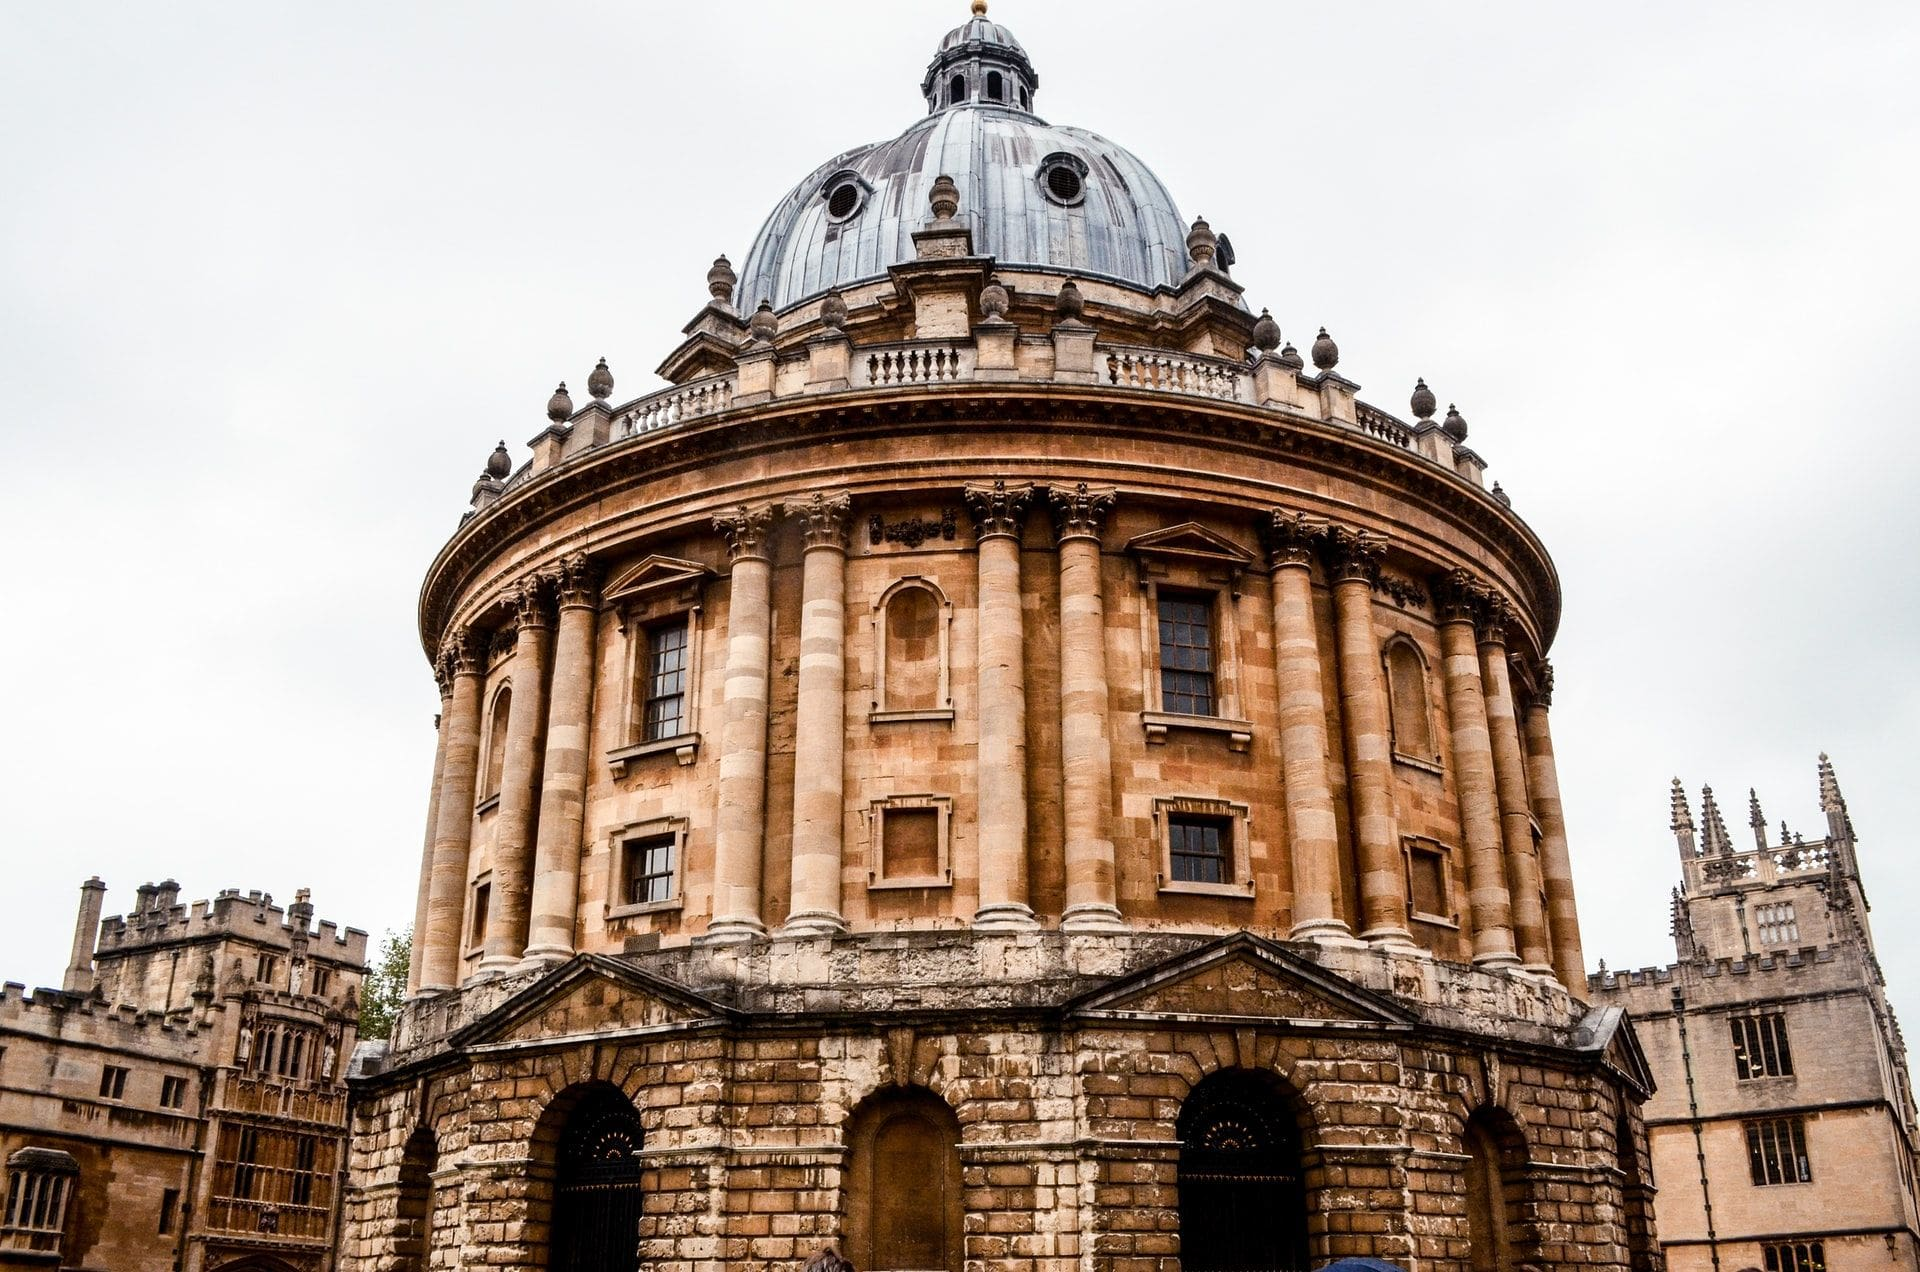 radcliffe-camera-old-historic-building-domed-library-and-tourist-attraction-oxford-university